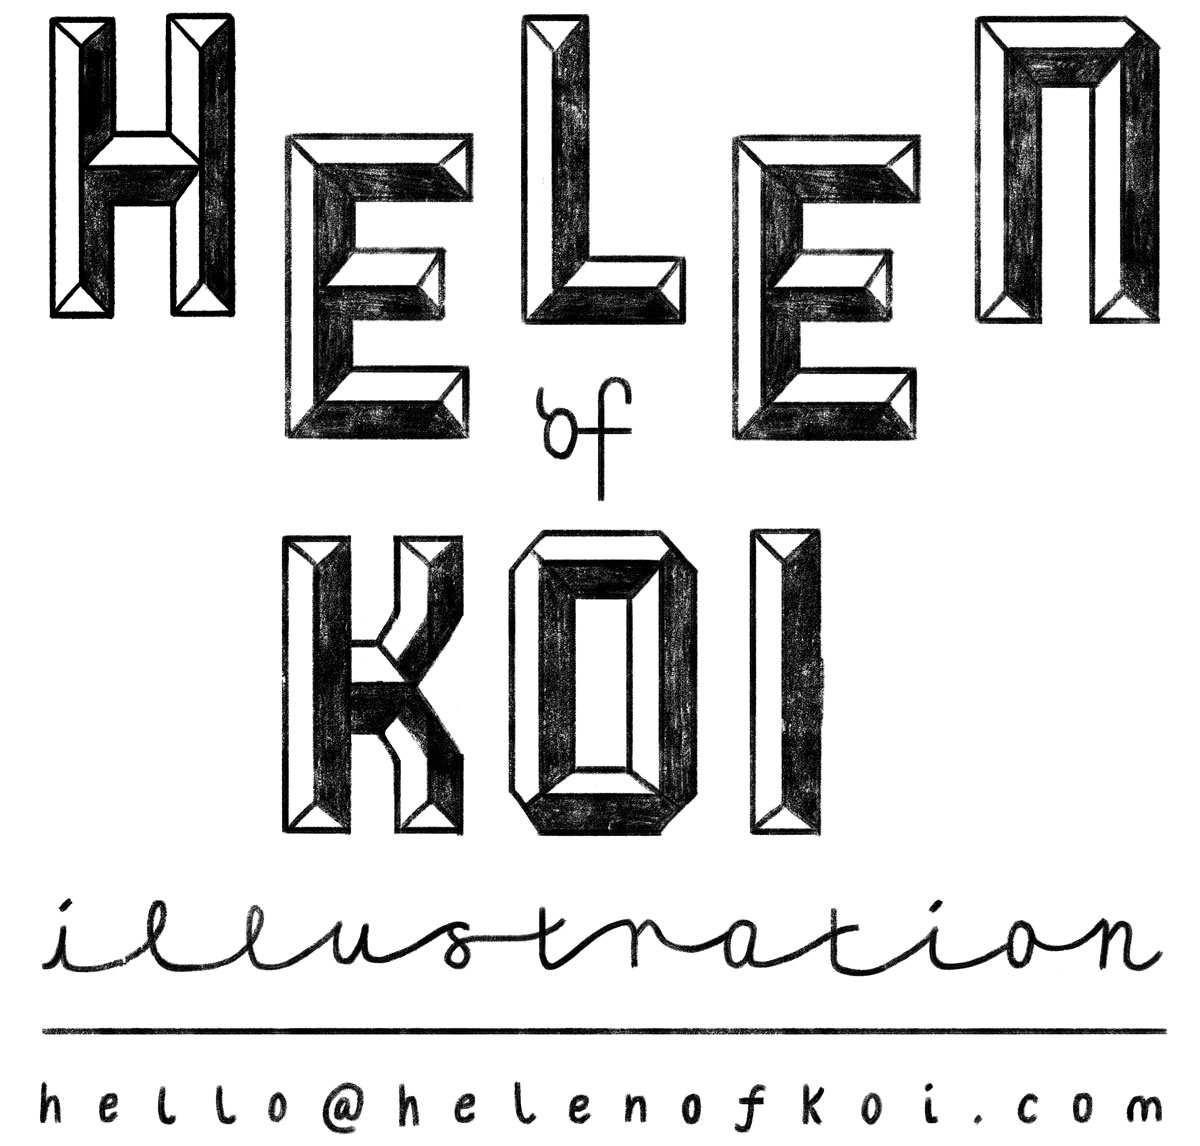 Helen Li Illustration